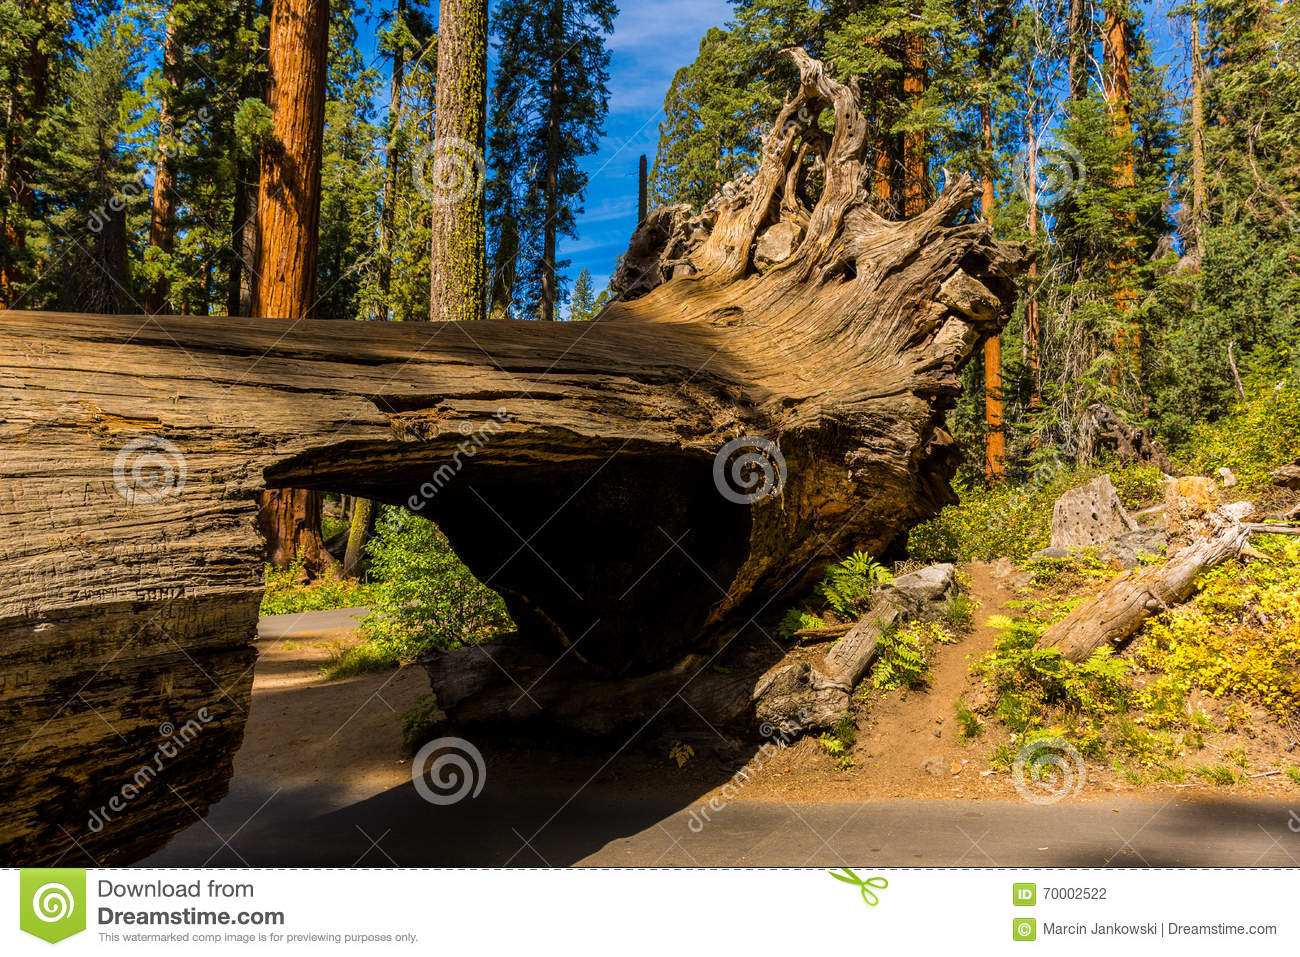 Ceppo del tunnel, foresta gigante, California U.S.A.